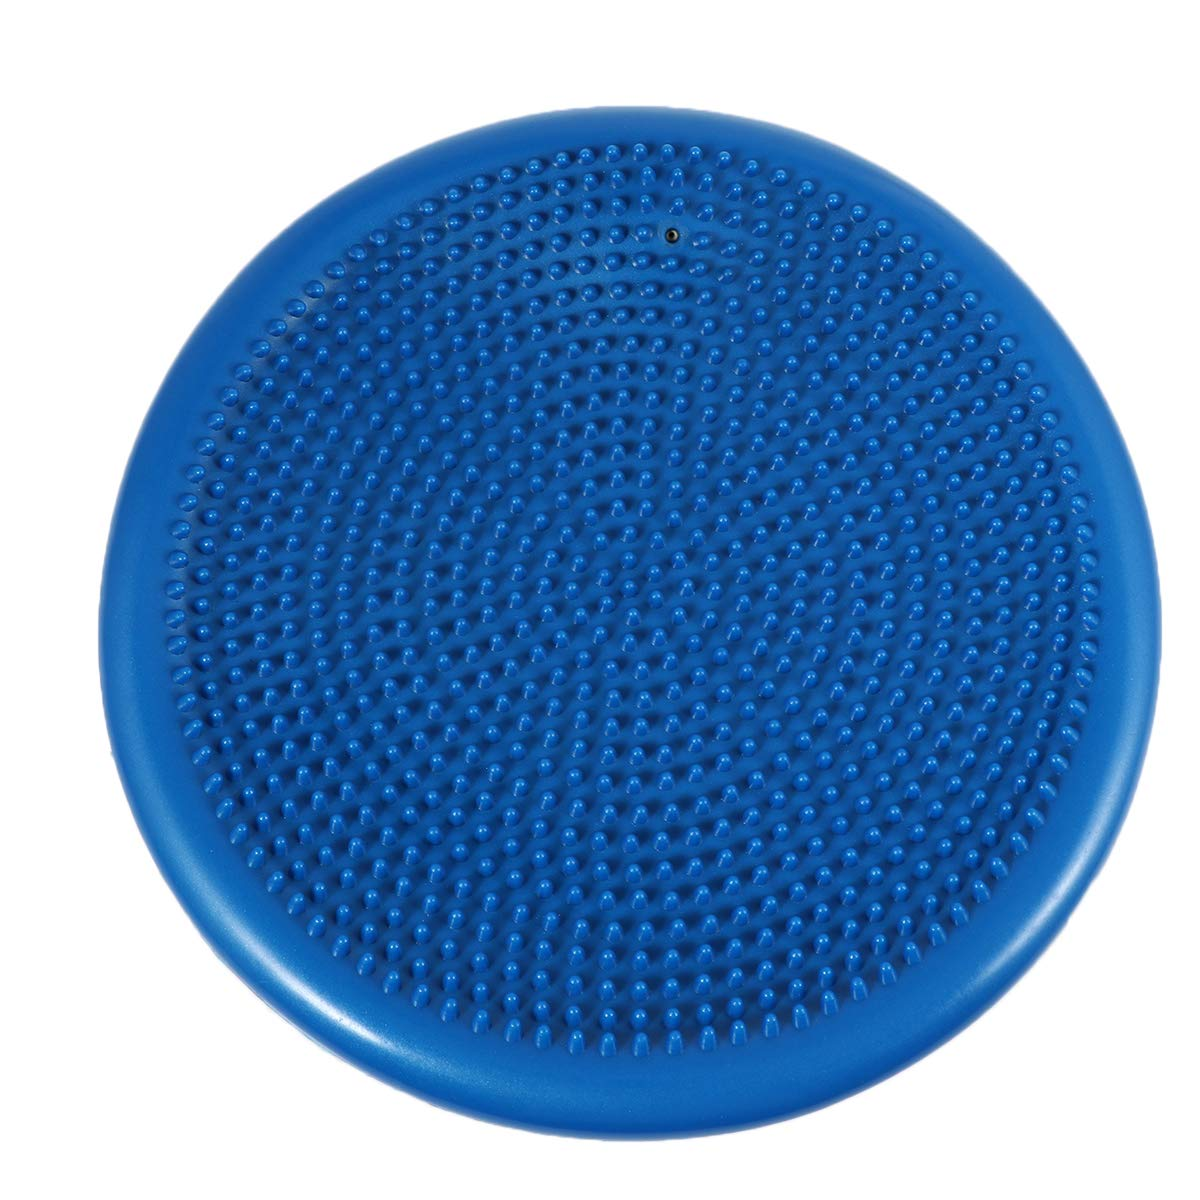 BESPORTBLE Inflated Stability Wobble Cushion Balance Disc Lumbar Support for Home Office Desk Chair Kids Alternative Classroom Sensory Wiggle Seat Blue